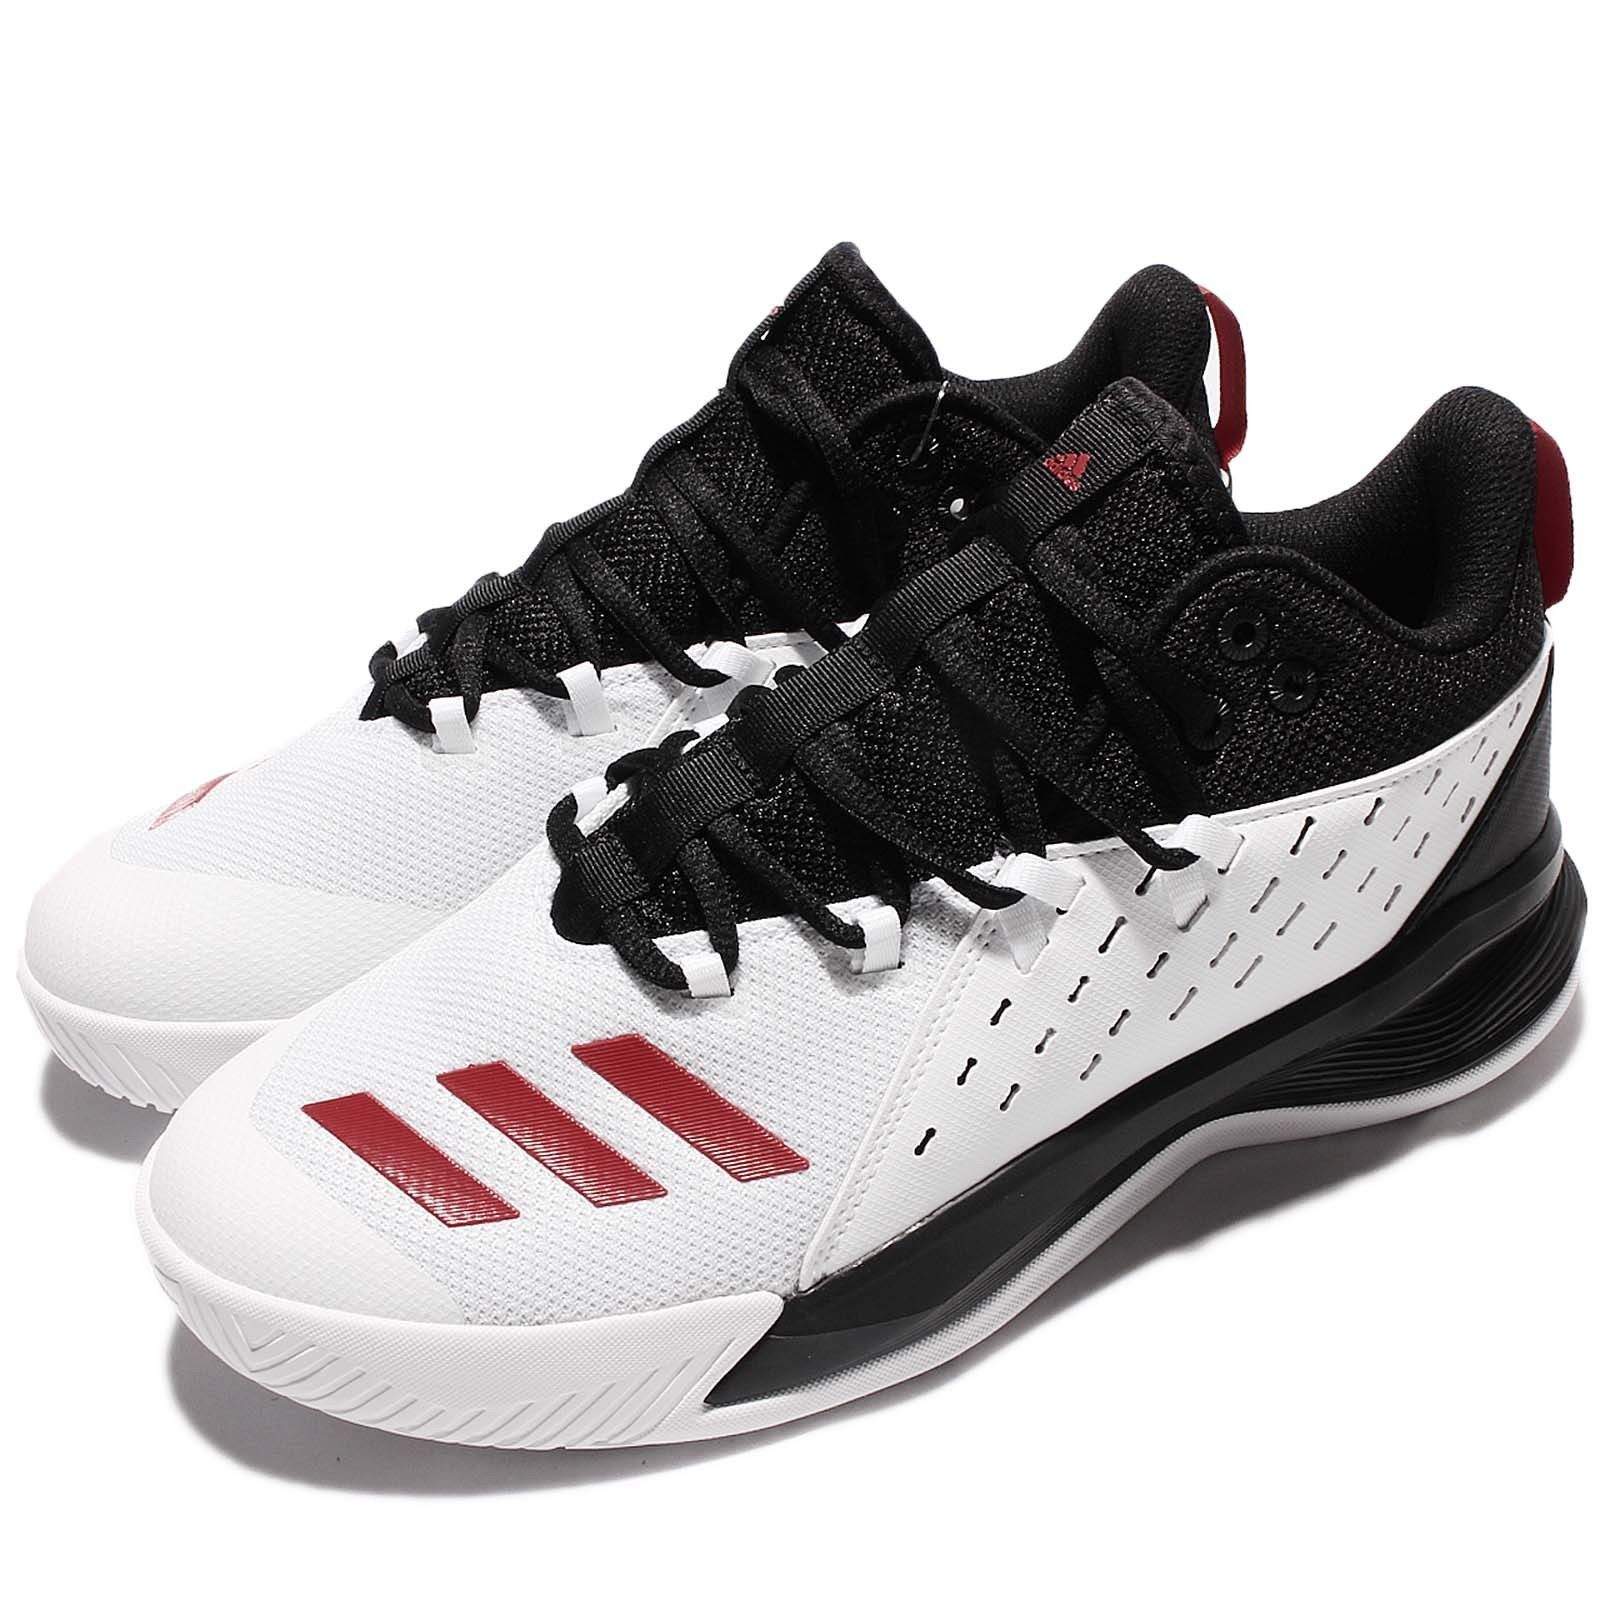 50% Off adidas Street Jam 3 White Black Red Men Basketball Shoes Sneakers  B49510